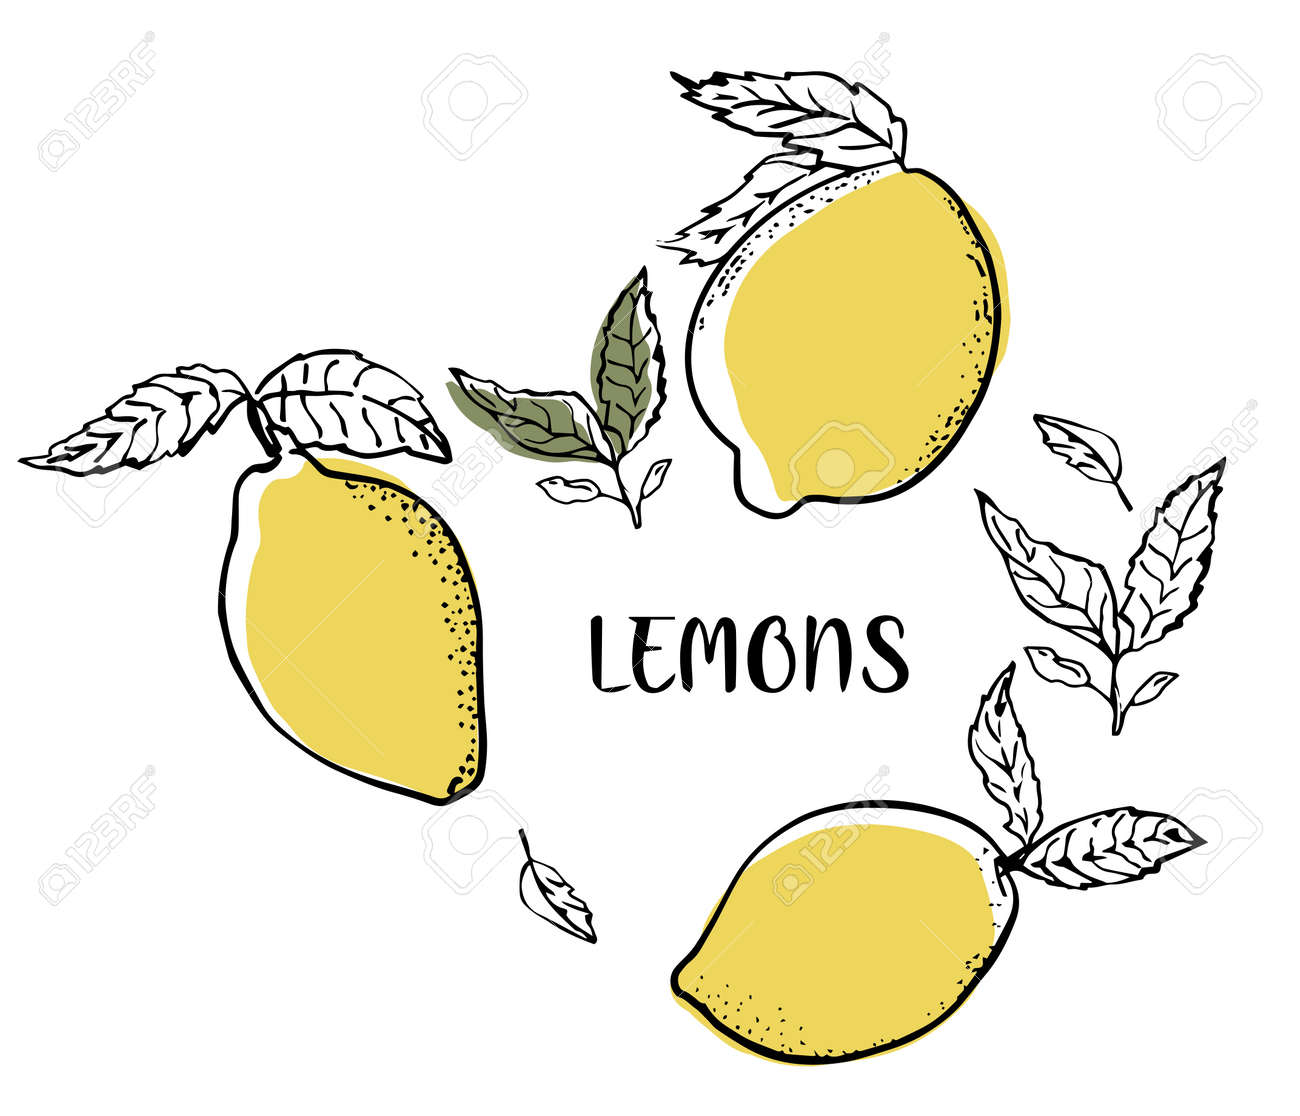 Fresh lemon fruits, collection of vector illustrations with leaves and text. Set with lemons. - 154725352